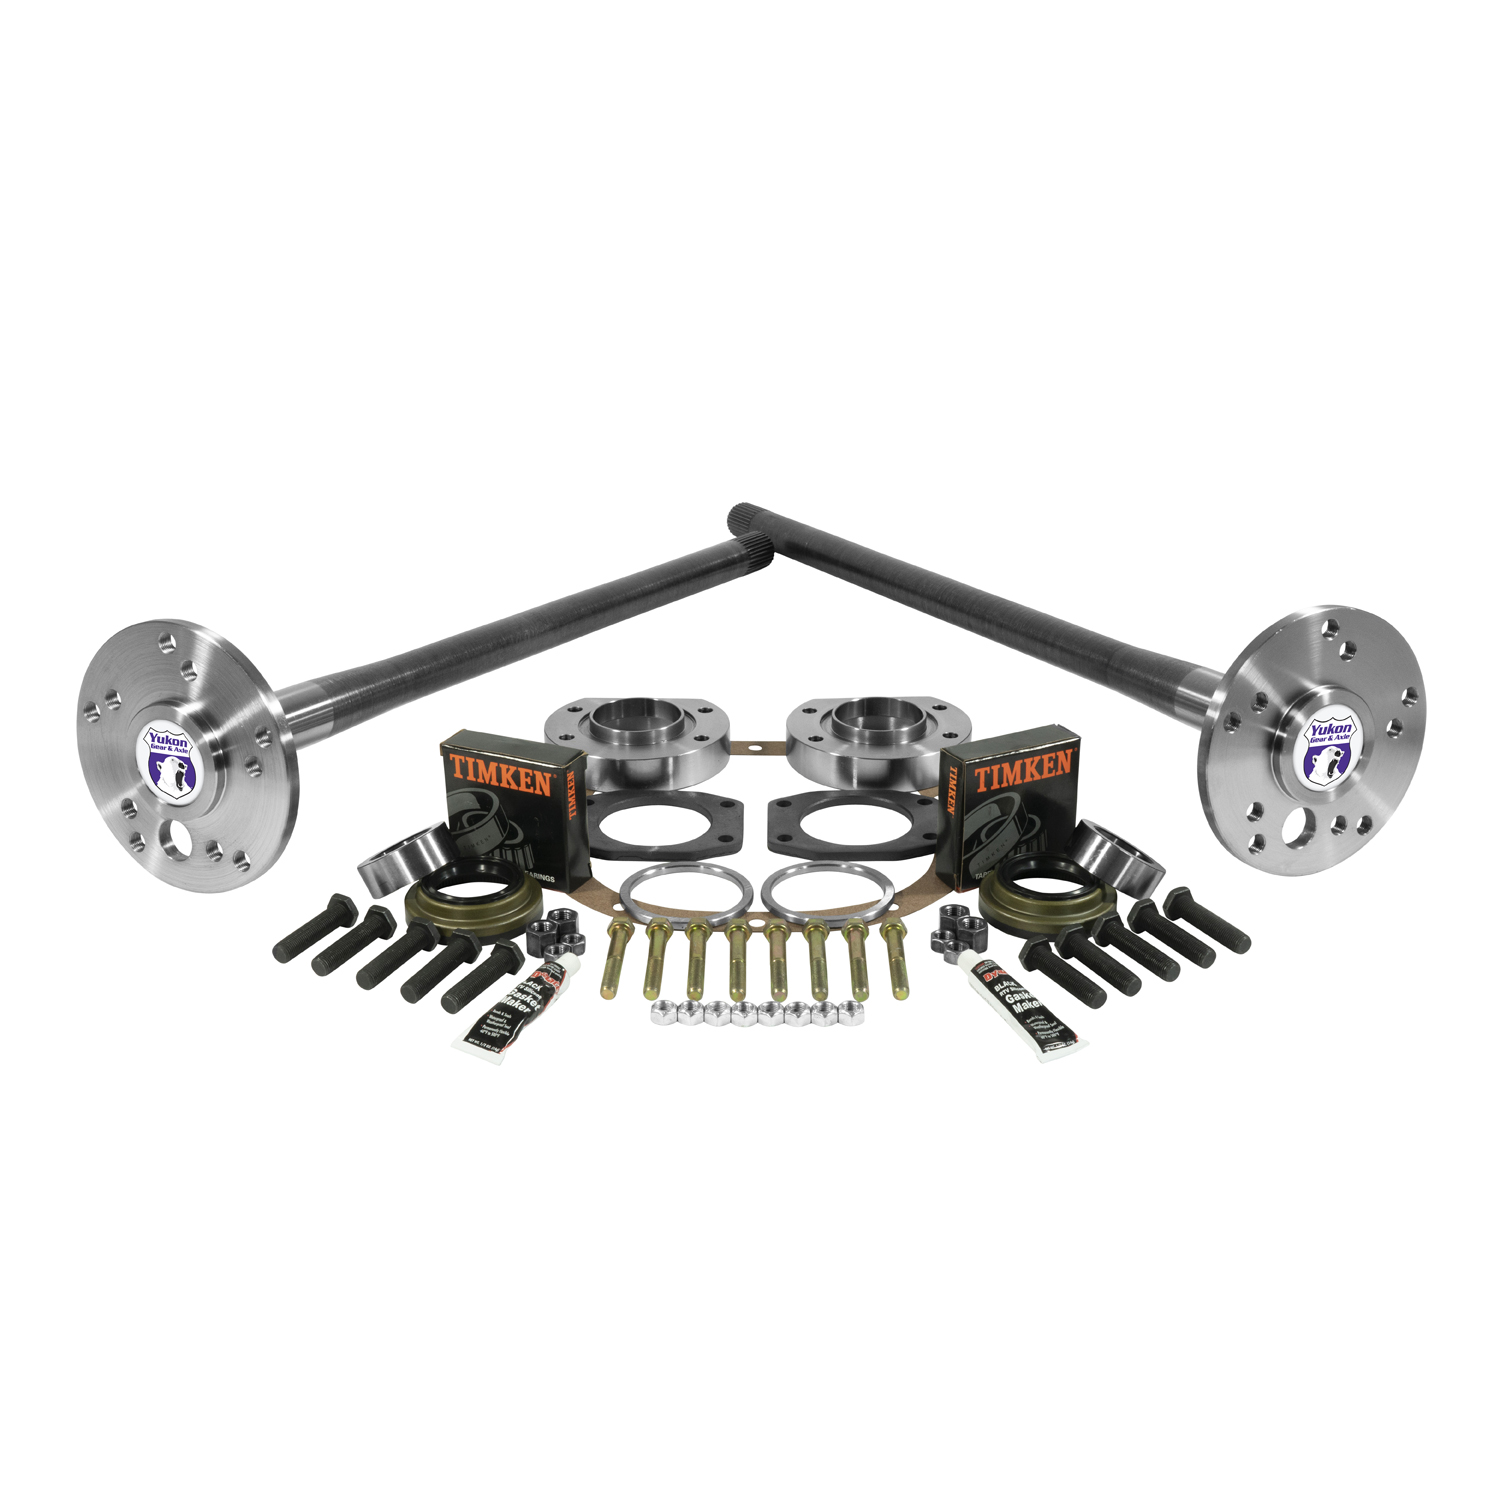 YA WF88-31-KIT - Yukon Ultimate 88 axle kit 95-02 Explorer, 4340 Chrome-Moly (Double drilled axles).